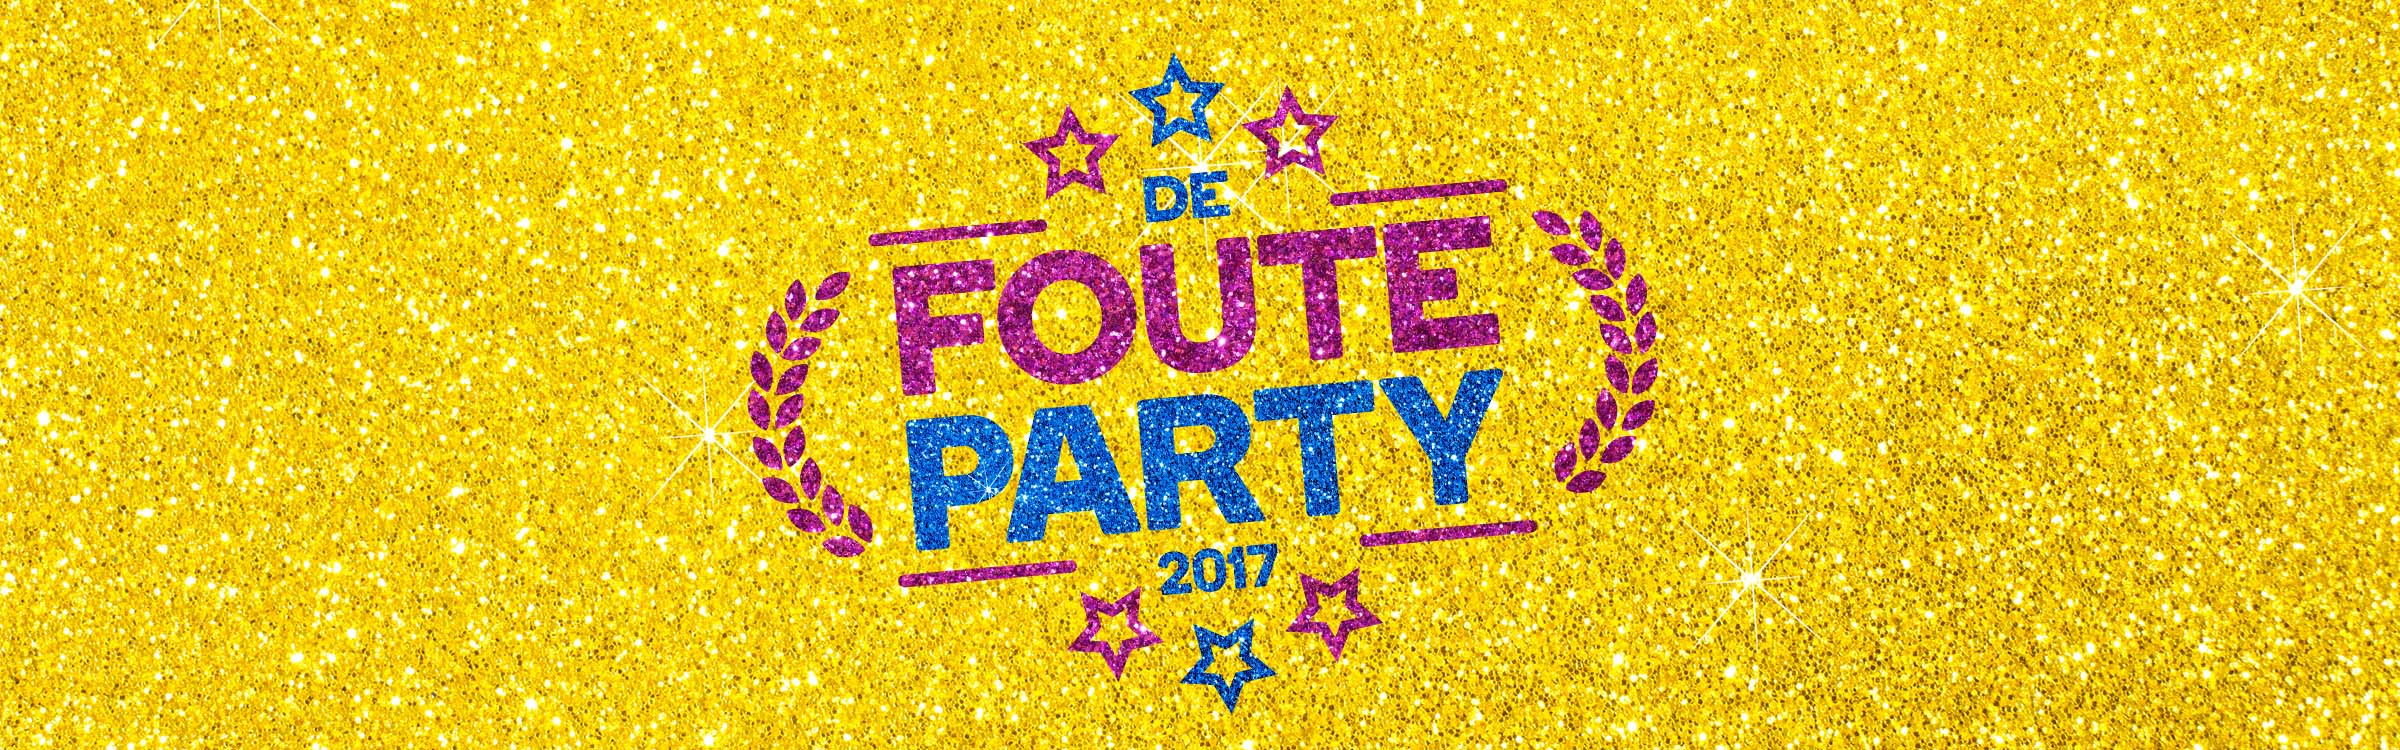 Header qmusic teaser fouteparty2017